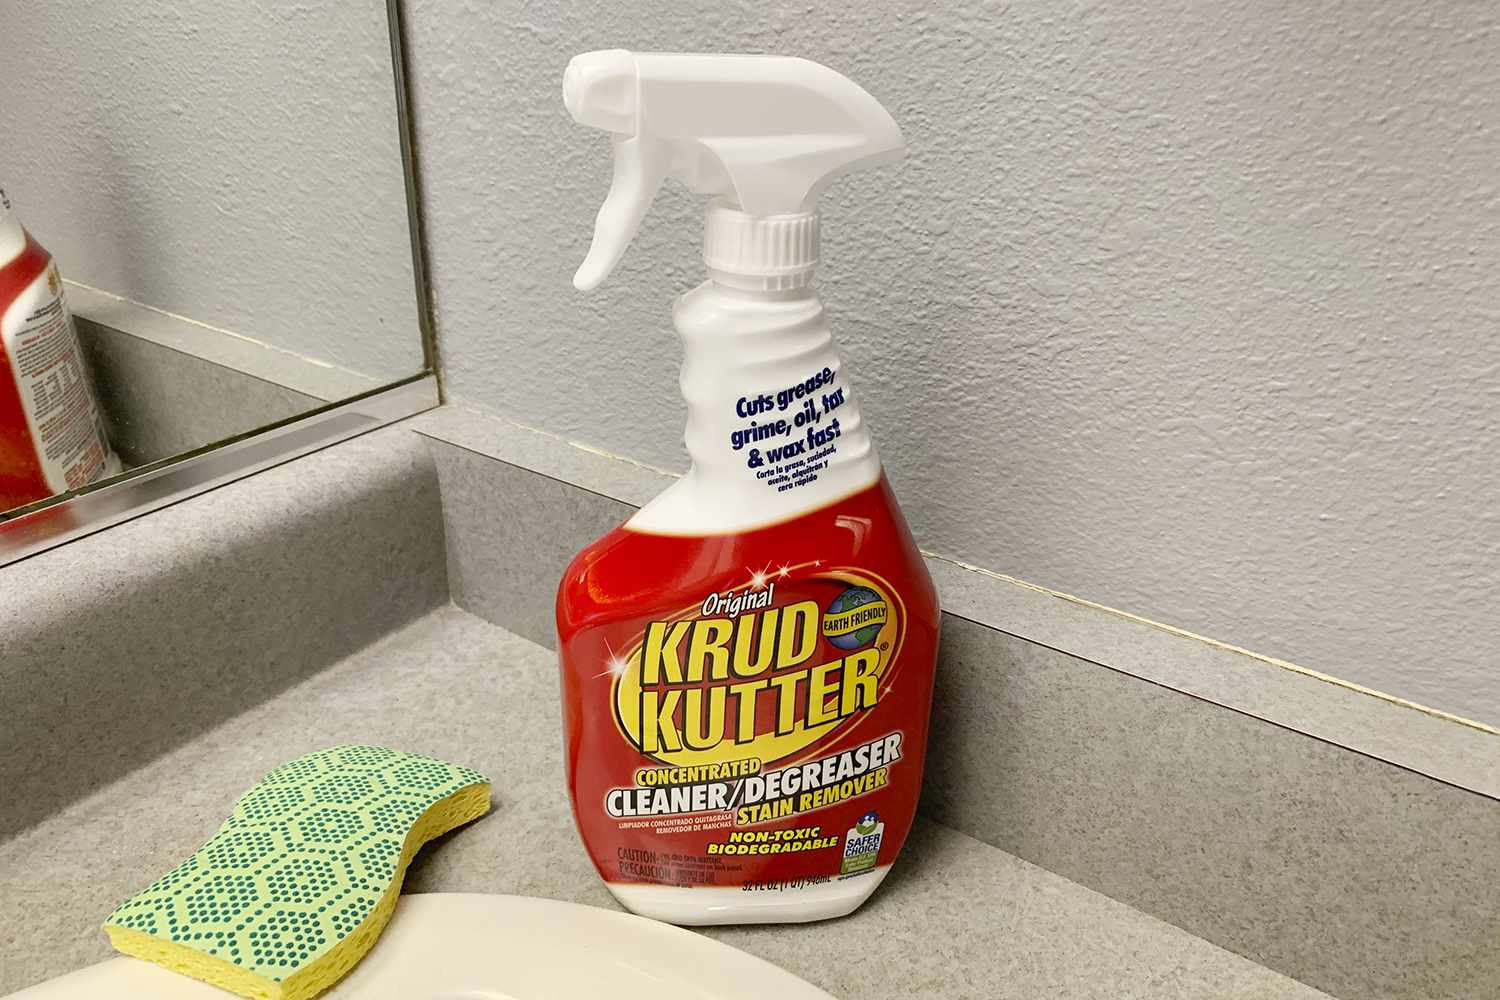 Krud Kutter Concentrated Cleaner and Degreaser